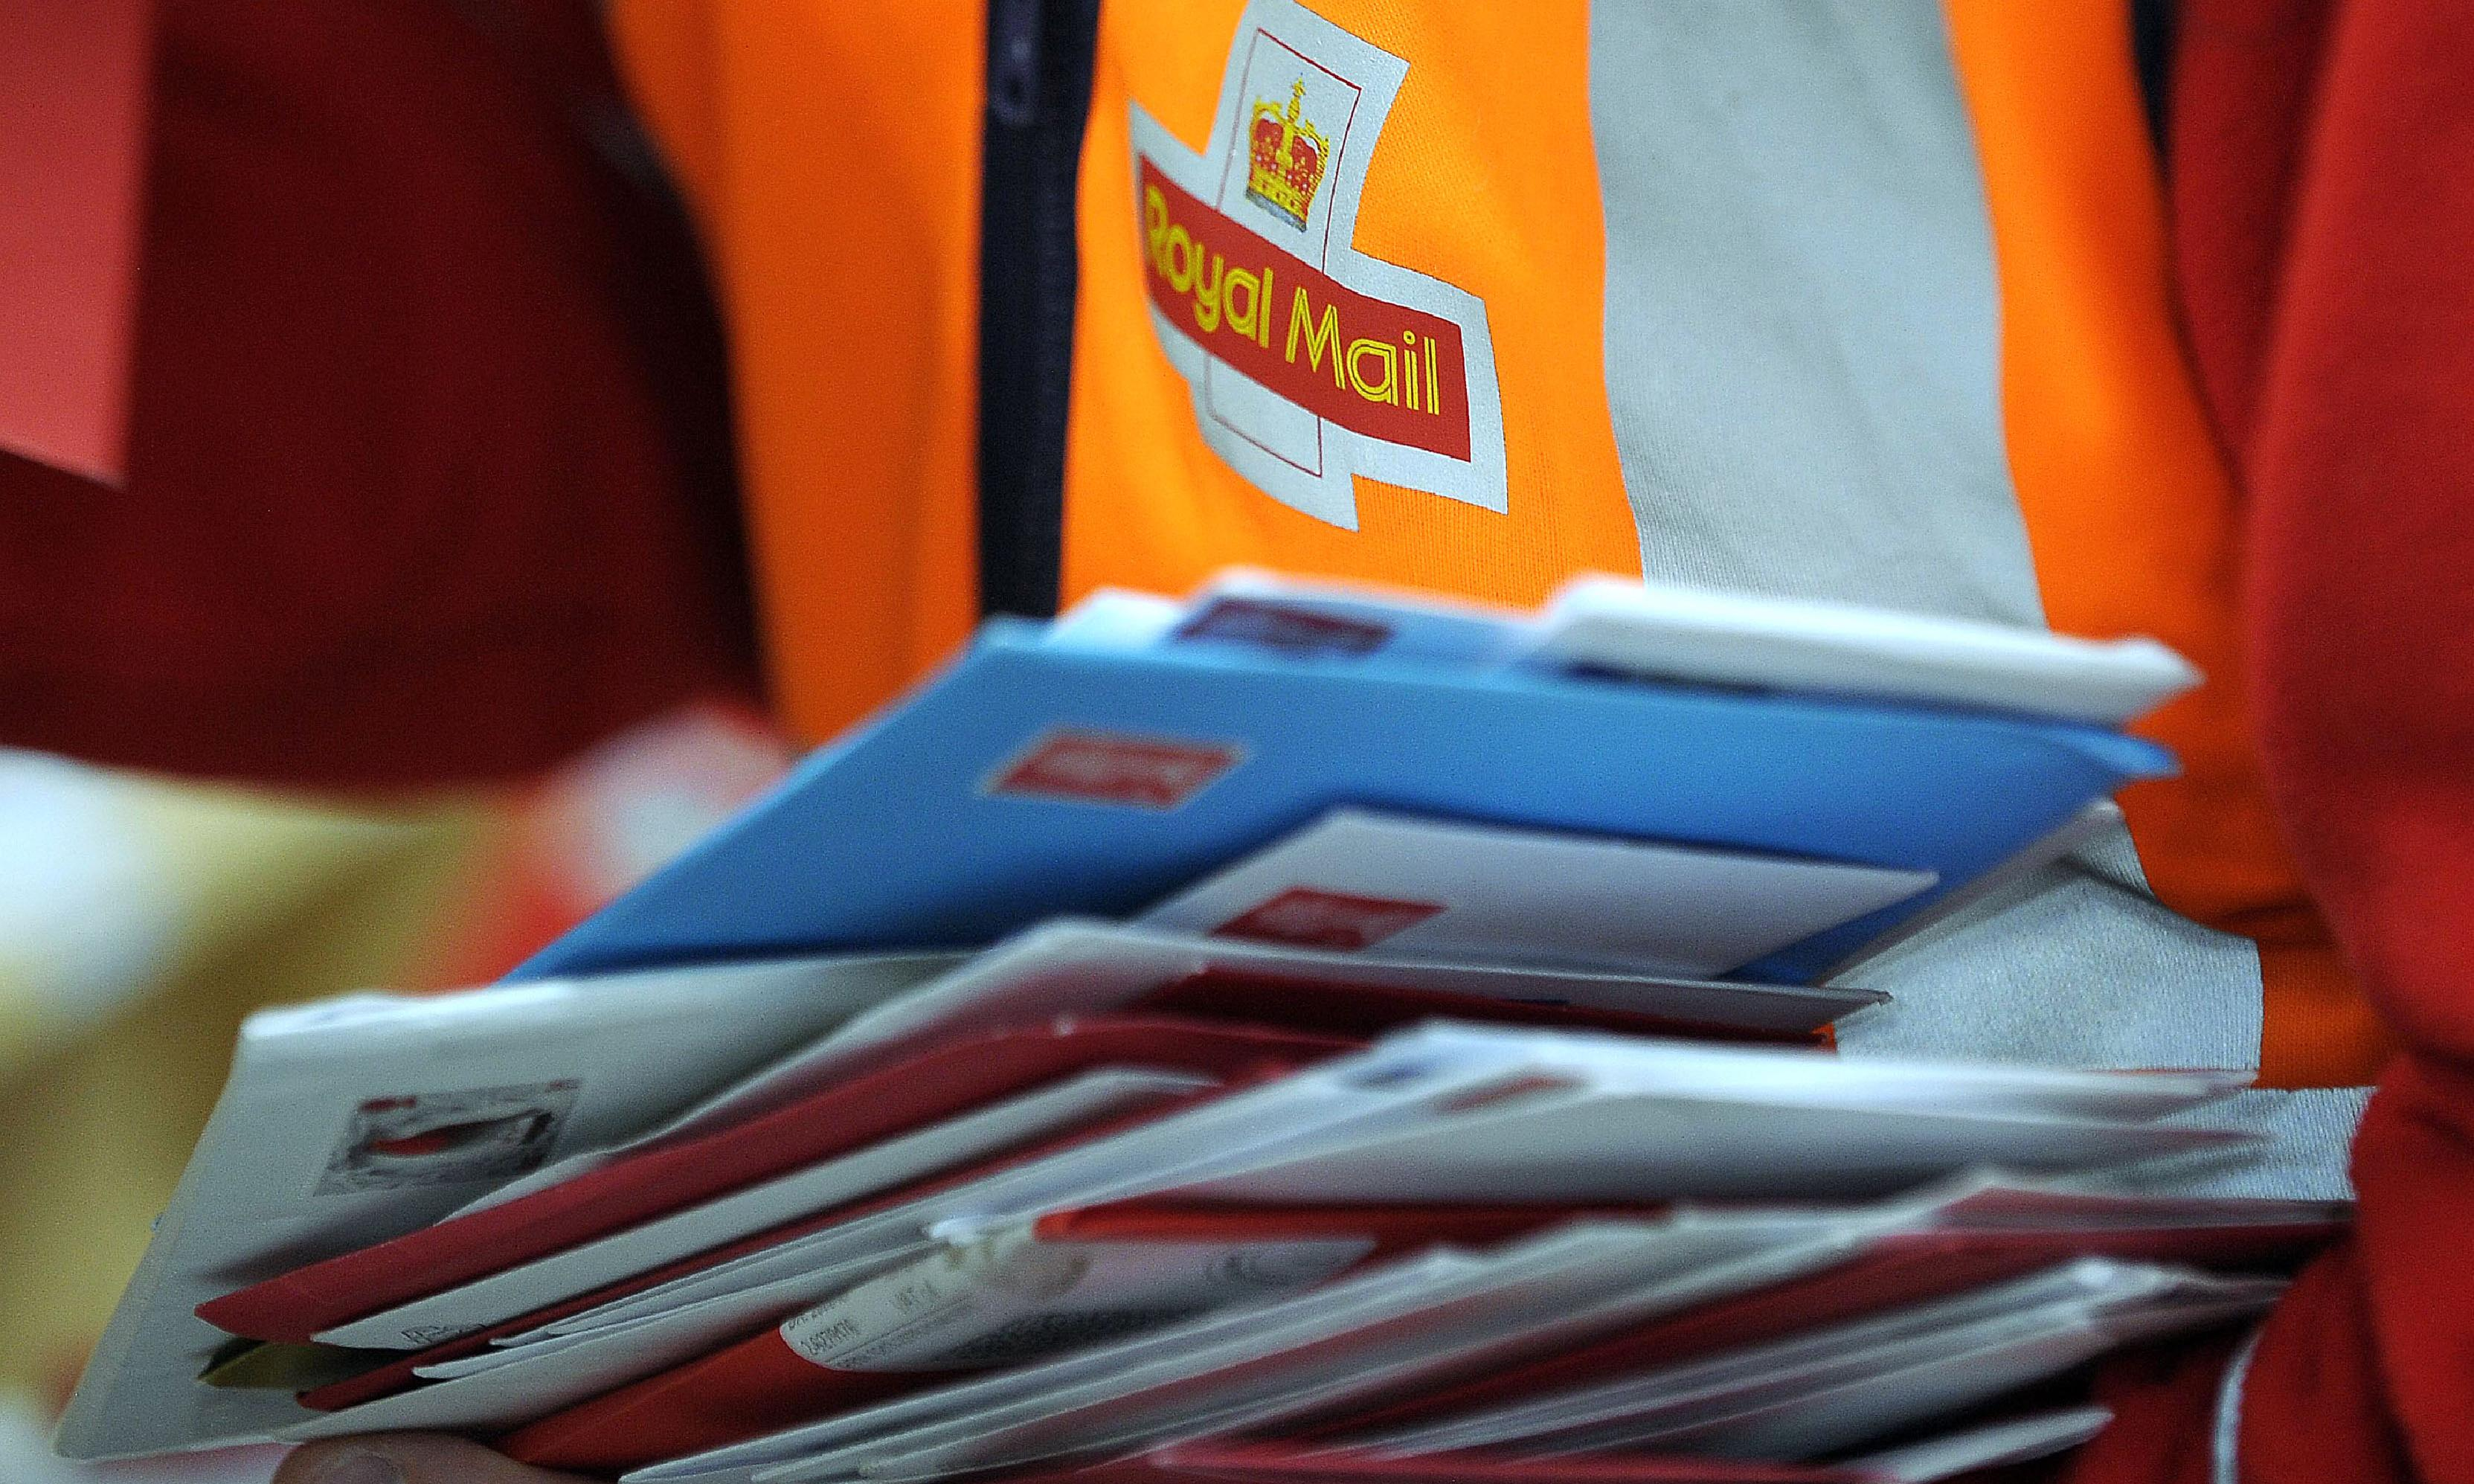 Royal Mail to raise price of stamps to offset losses